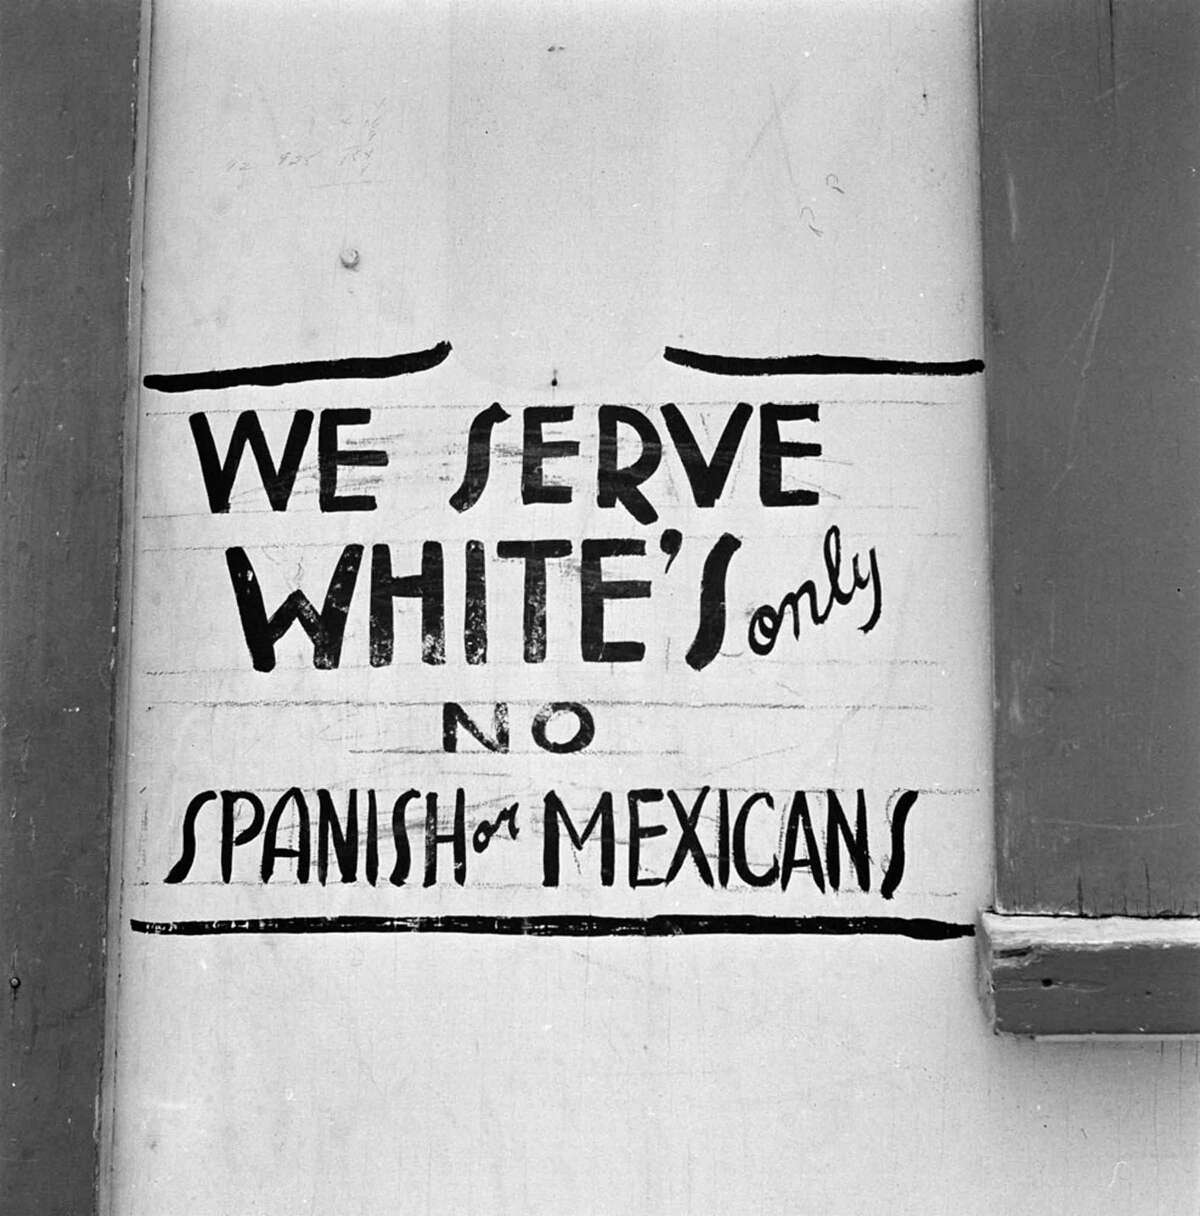 Failure to enforce the rights granted under the Treaty of Guadalupe Hidalgo led to the disenfranchisement of Mexican Americans and a civil rights battle that continues to this day. Here, a sign of segregation from 1954 in the small Texas town of Edna.